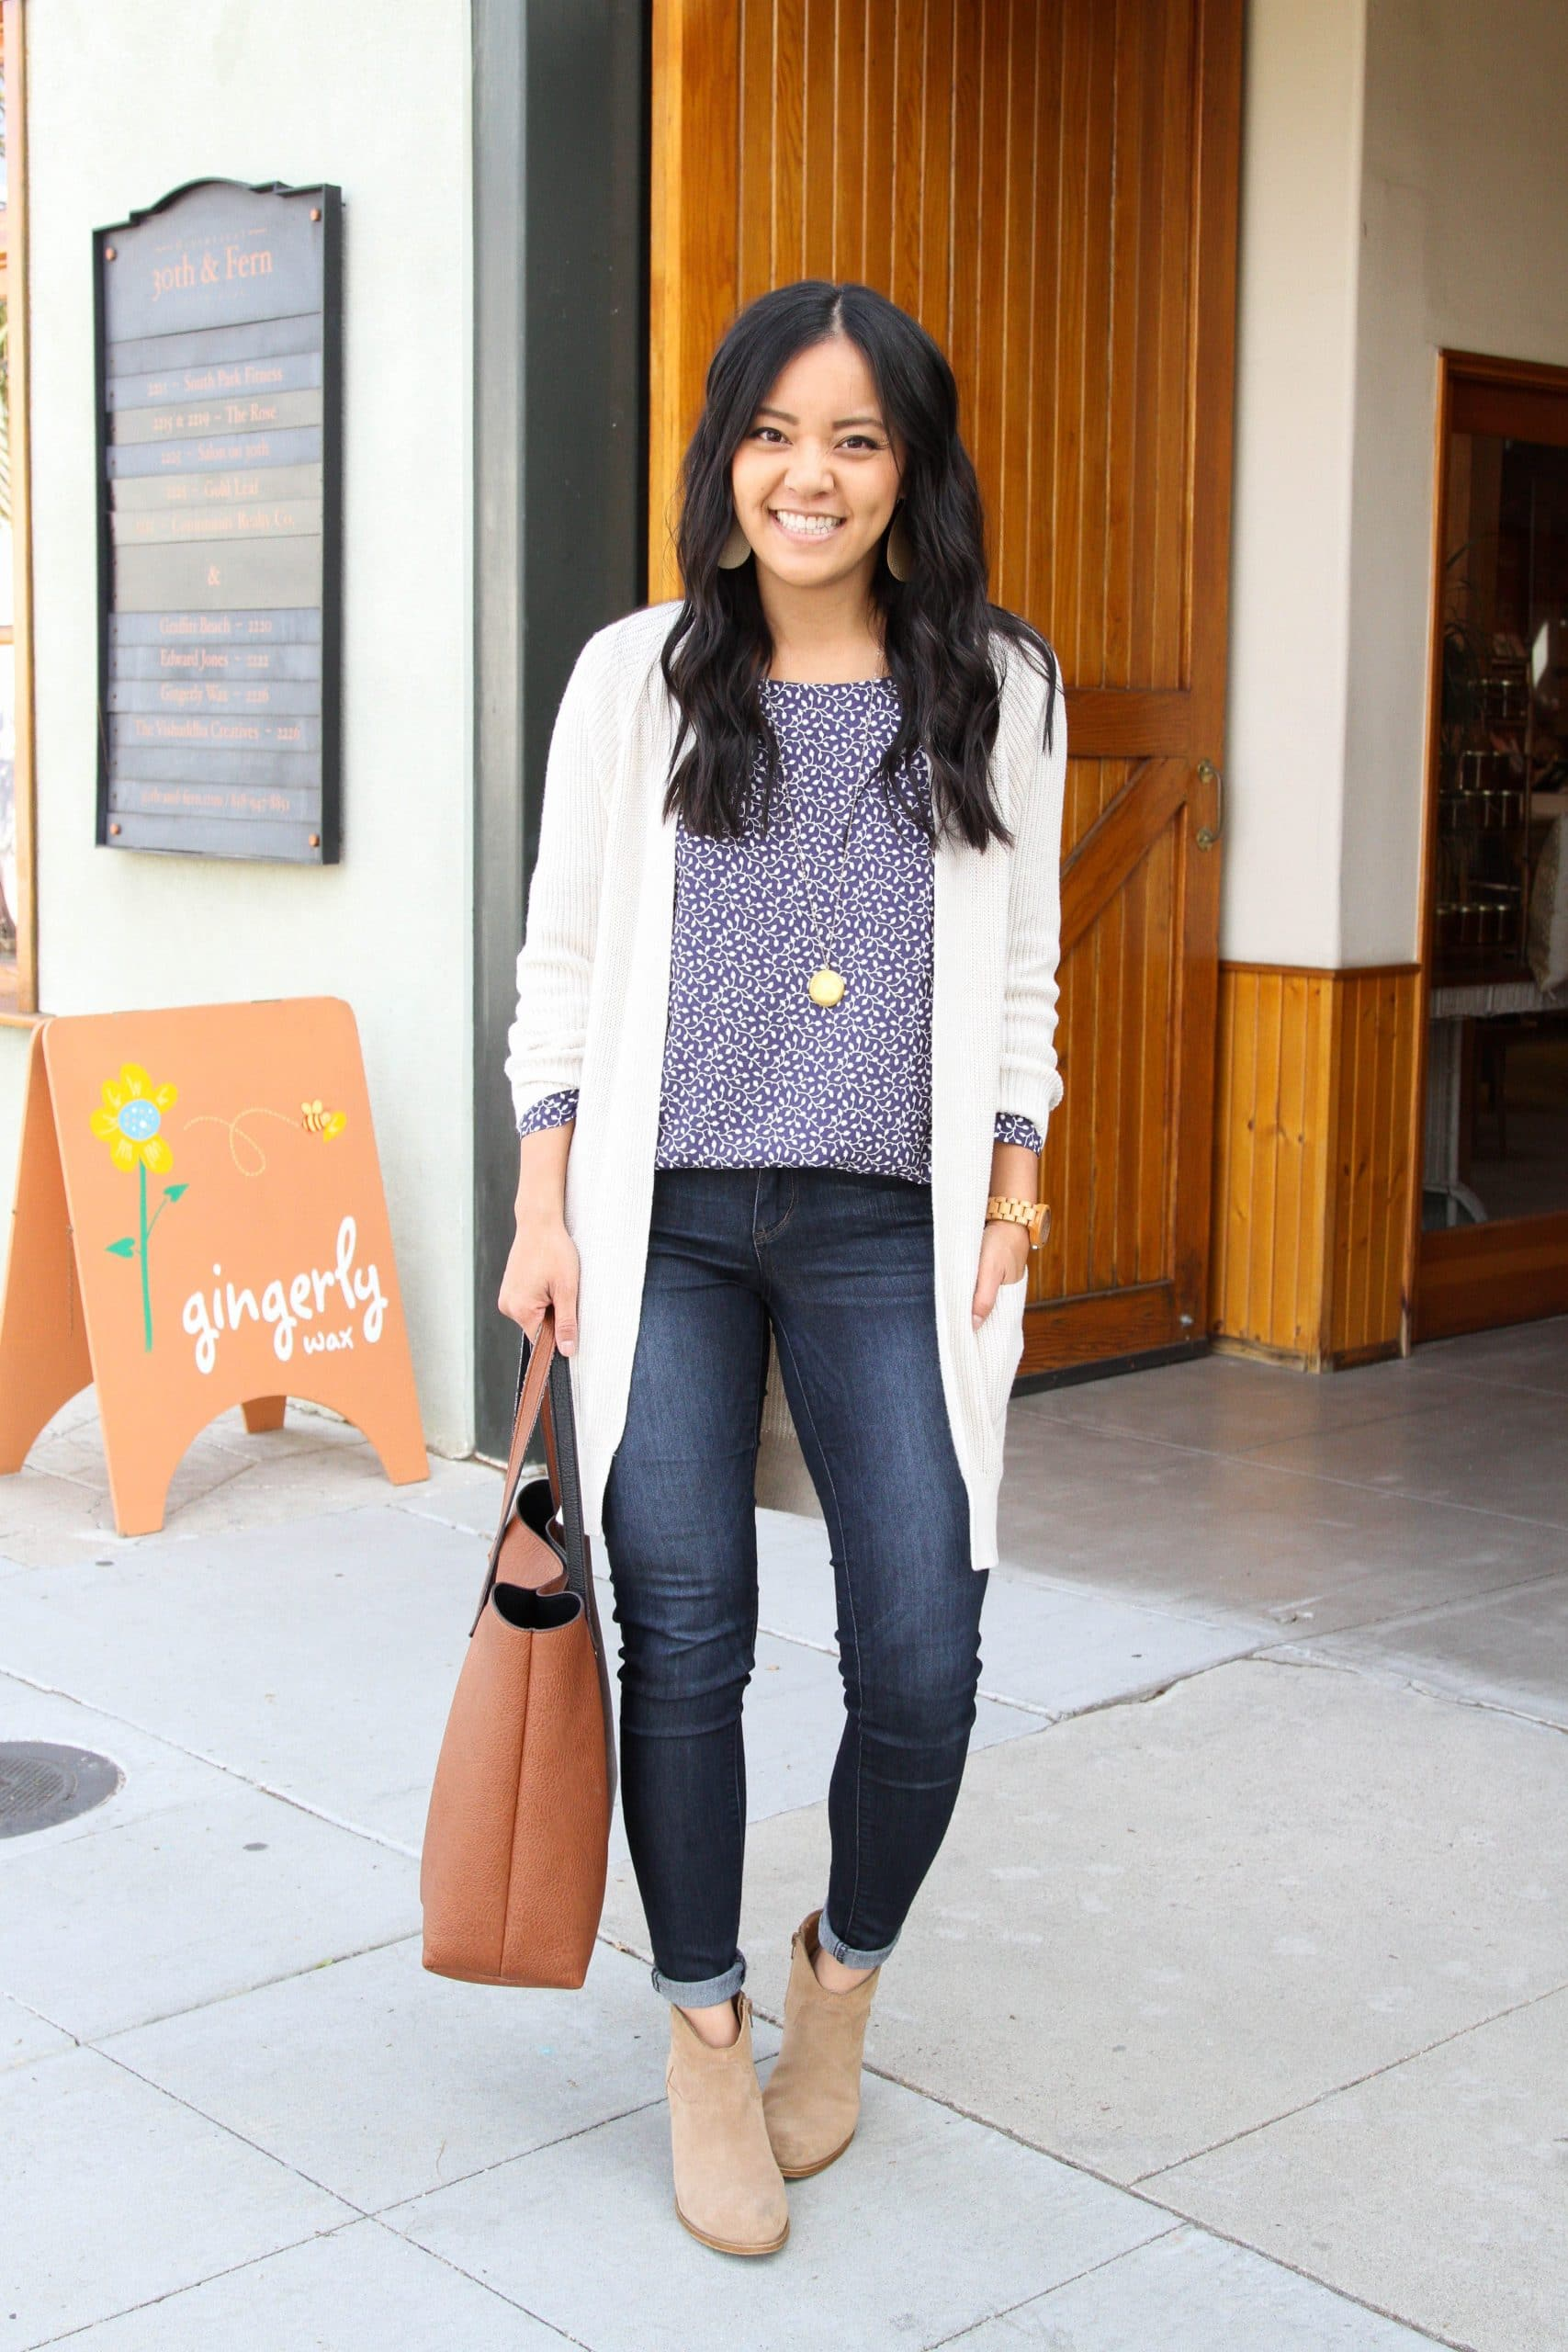 Winter to Spring Transitional Outfit: navy printed blouse + skinny jeans + long cream cardigan + tan suede booties + cognac leather tote bag + long gold disc pendant necklace + gold leather earrings